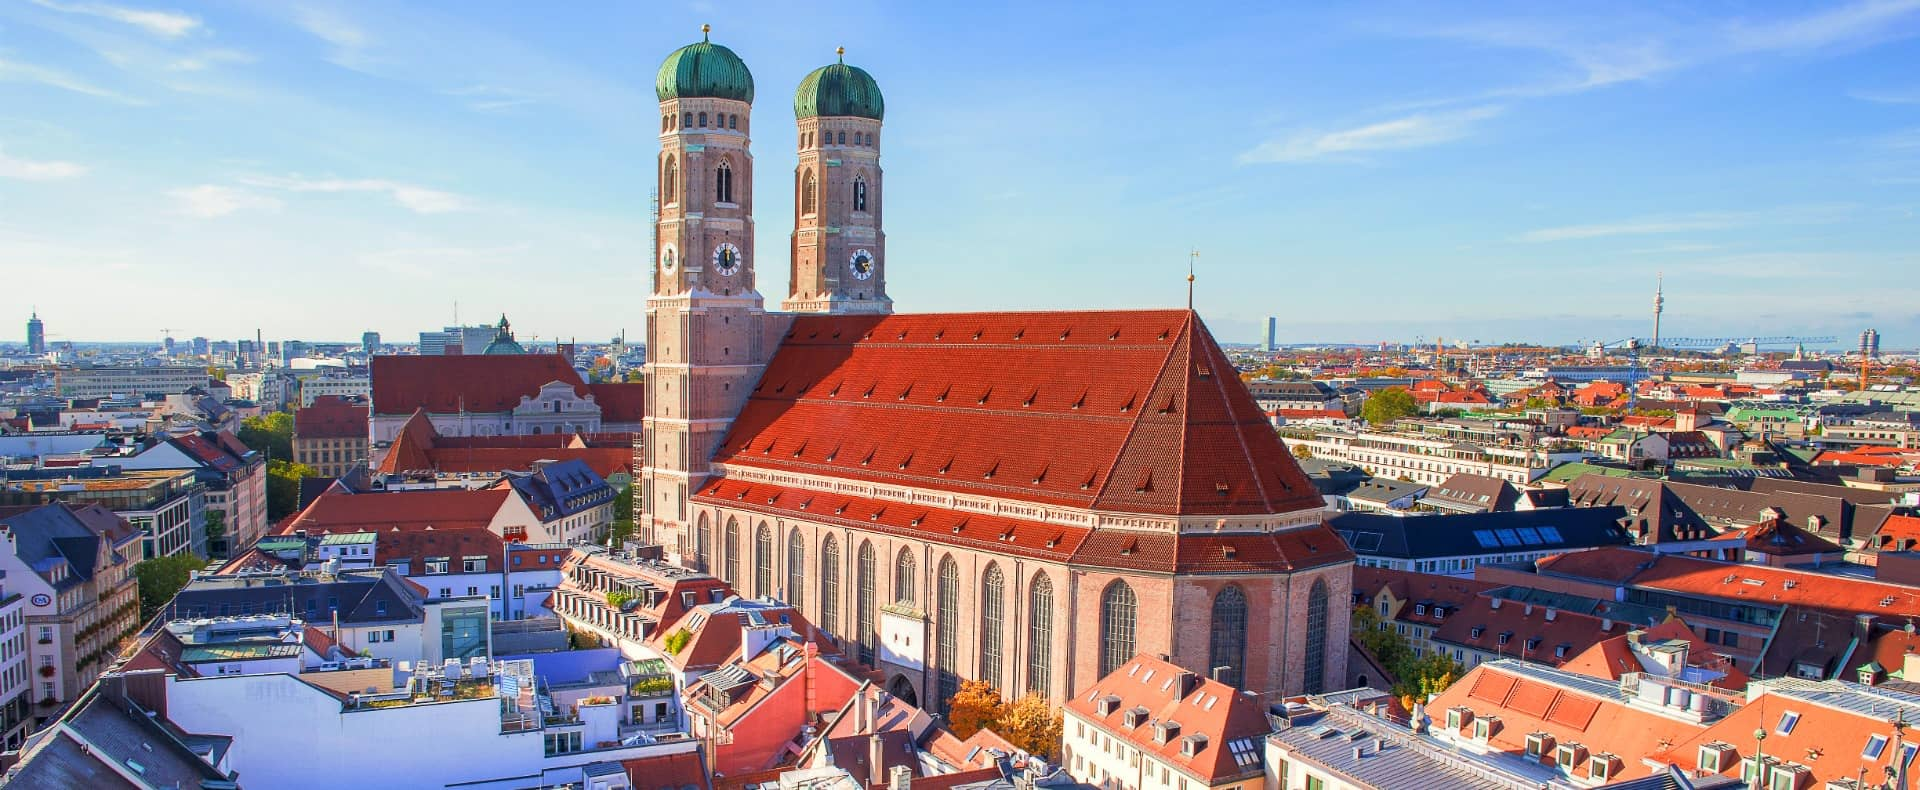 Frauenkirche, Munich, Germany